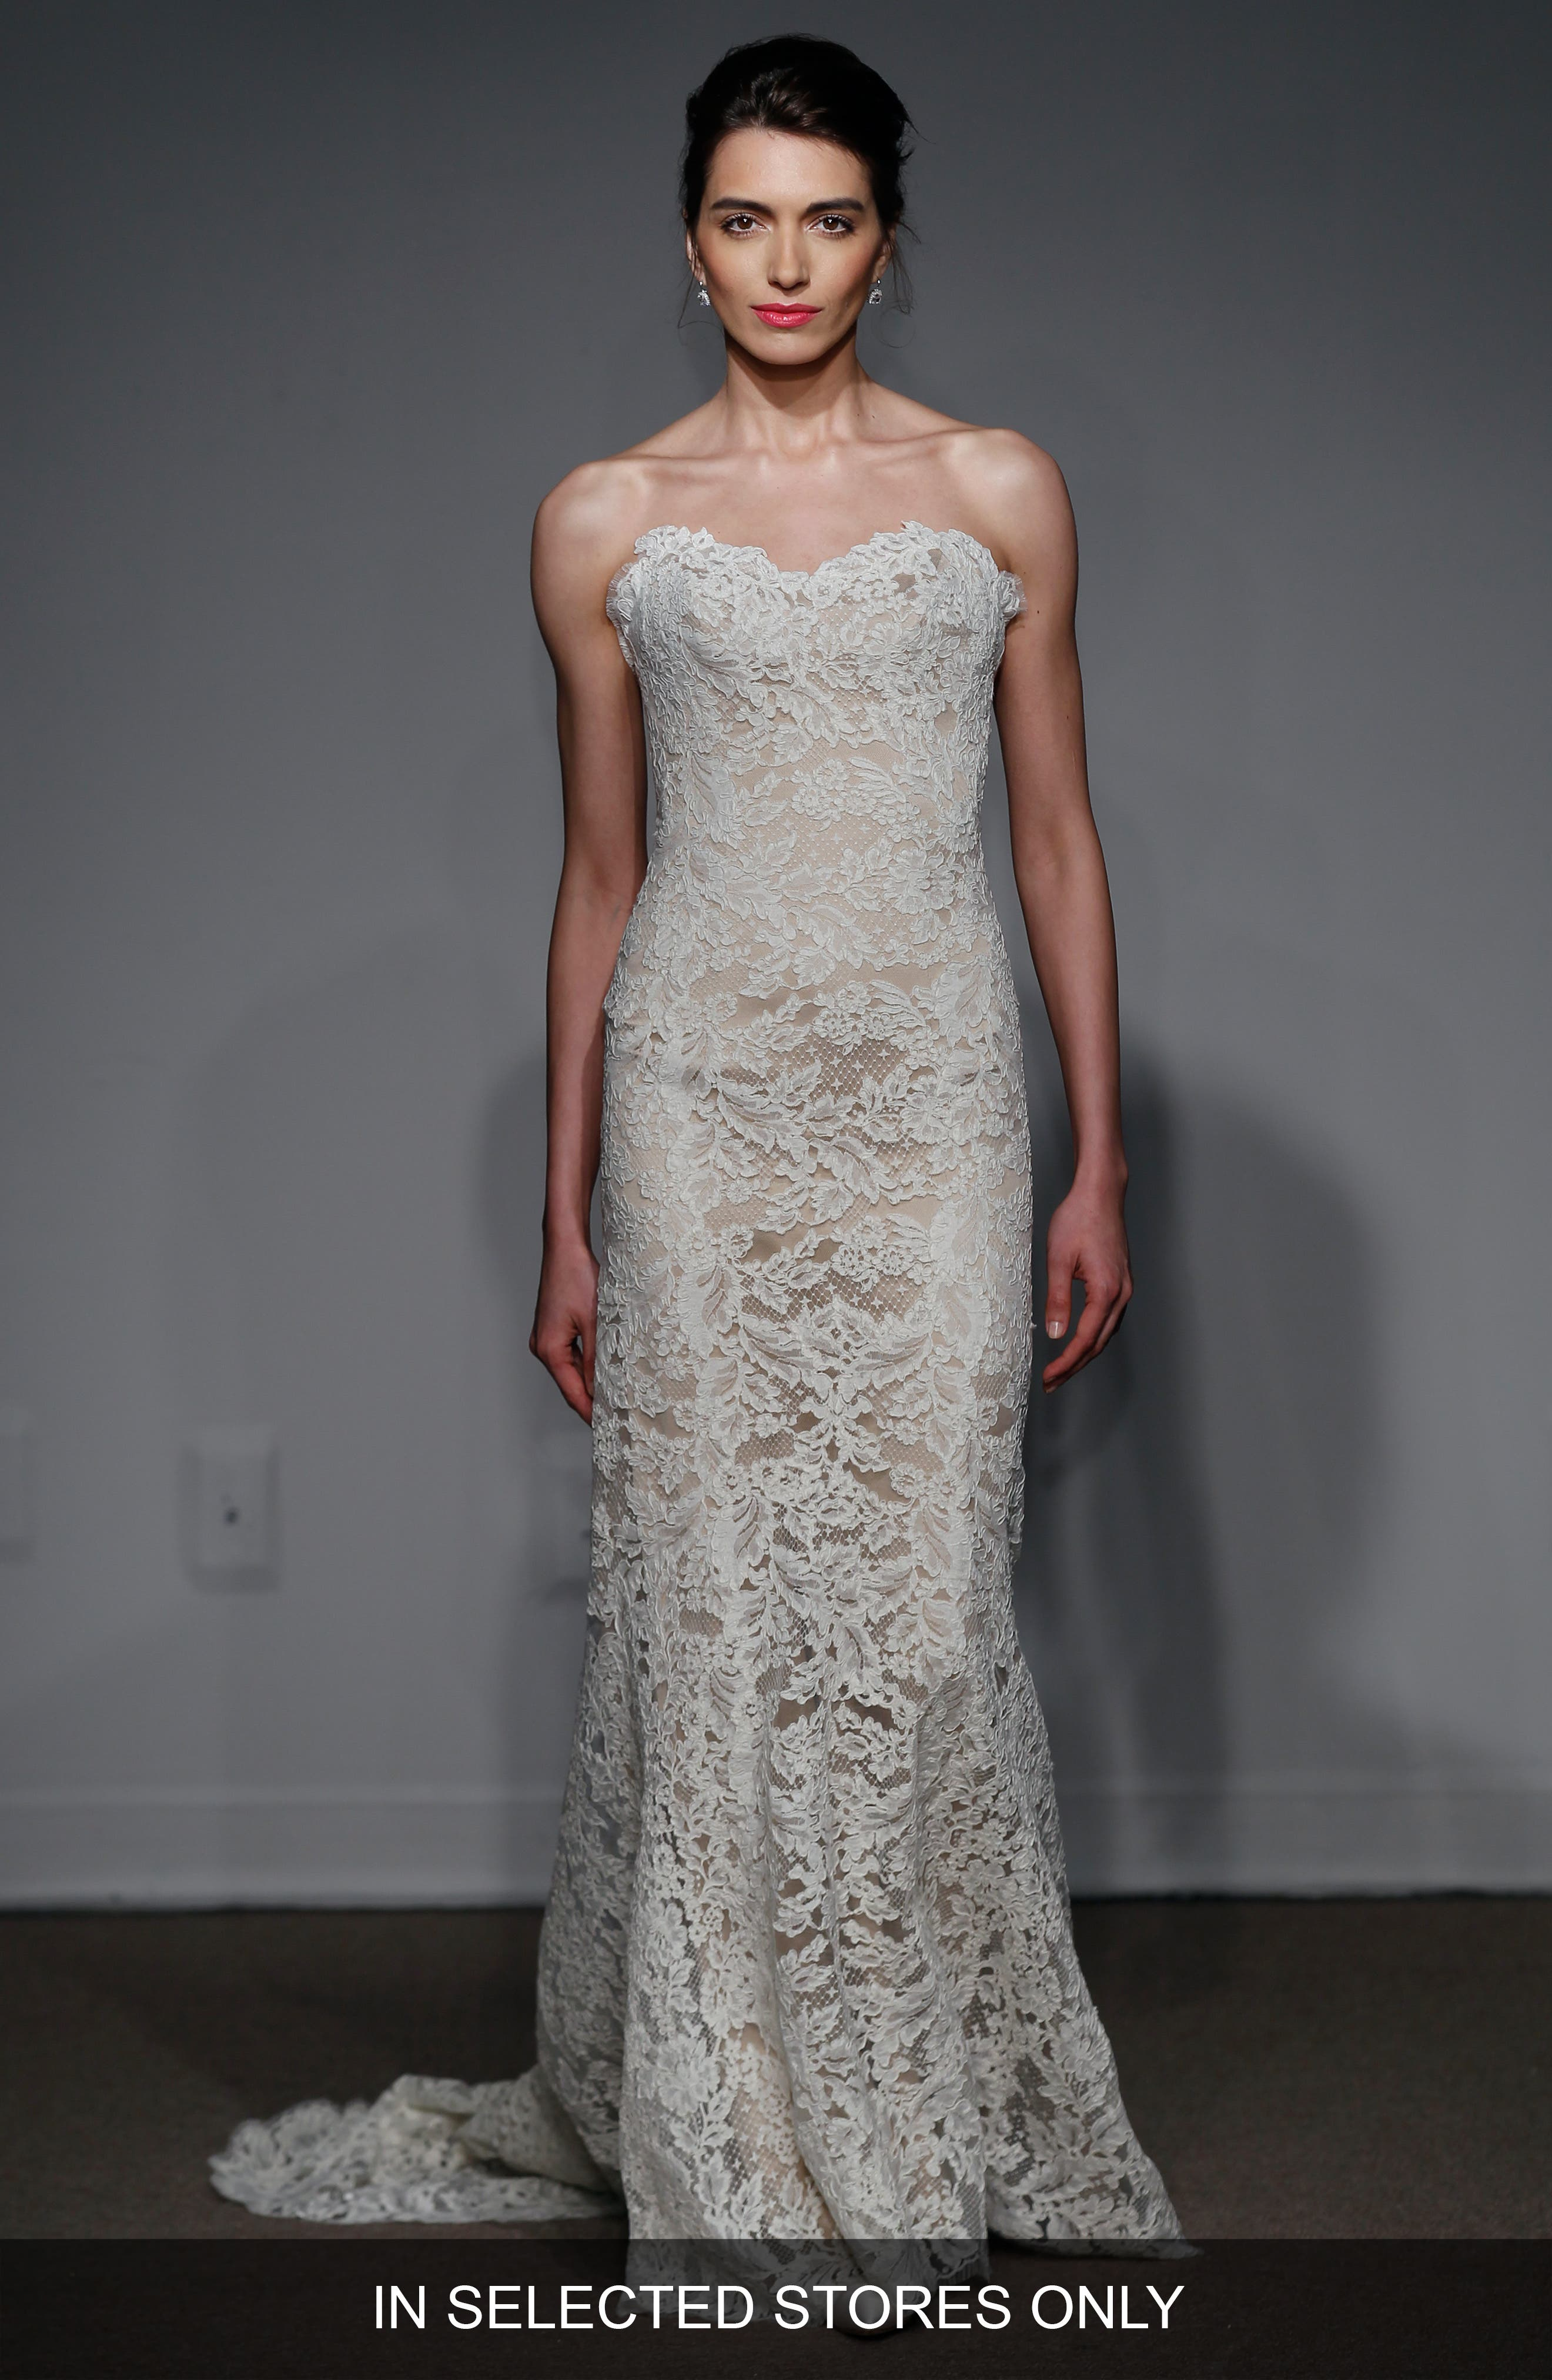 Alternate Image 1 Selected - Anna Maier Couture Lyon Strapless Lace Column Gown (Regular & Plus Size)